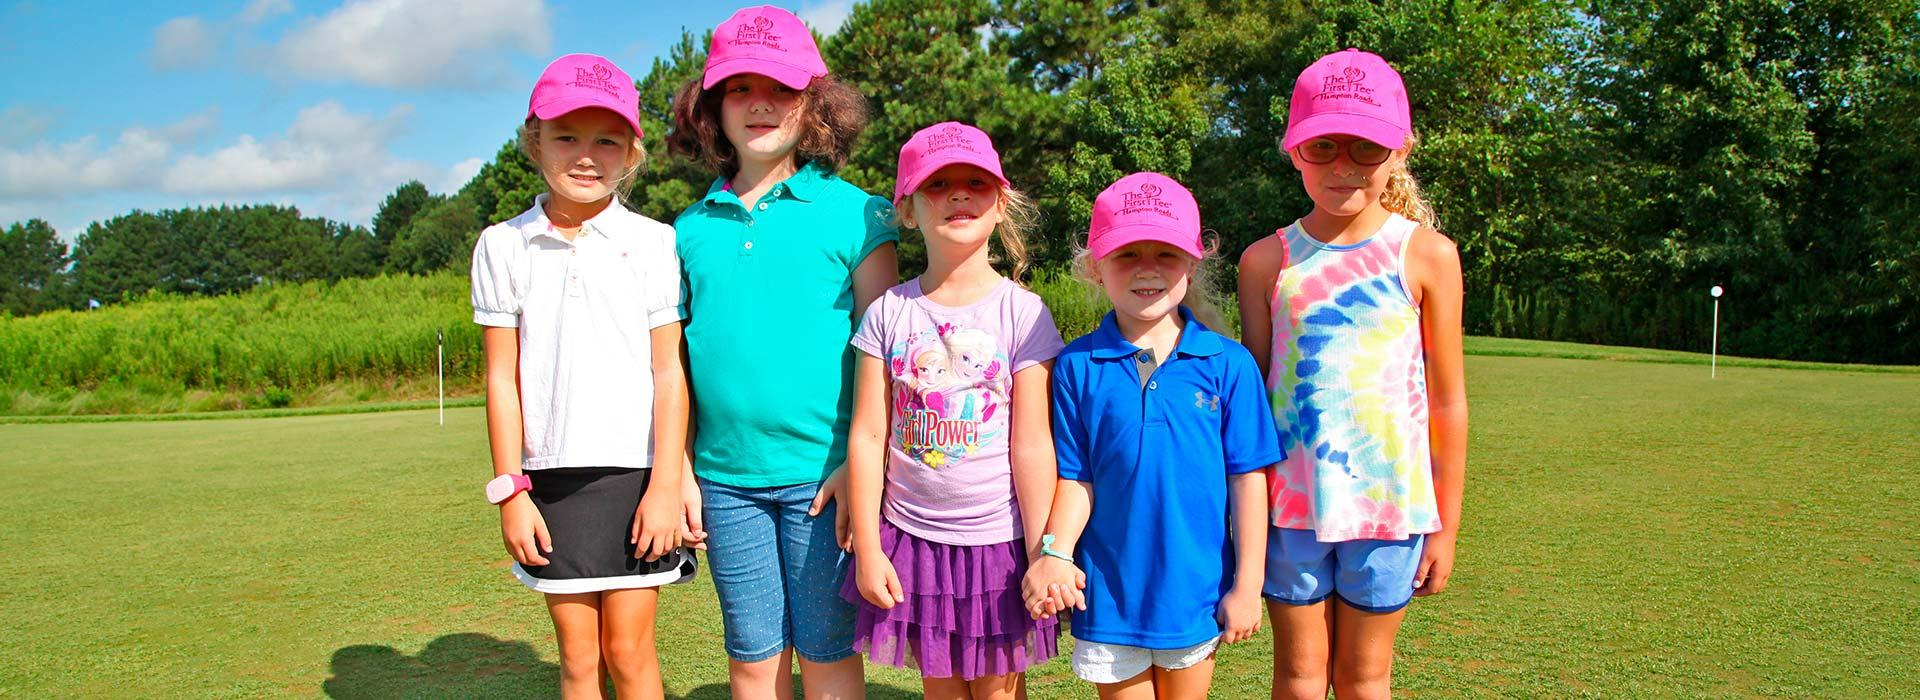 The First Tee of Hampton Roads girls standing together